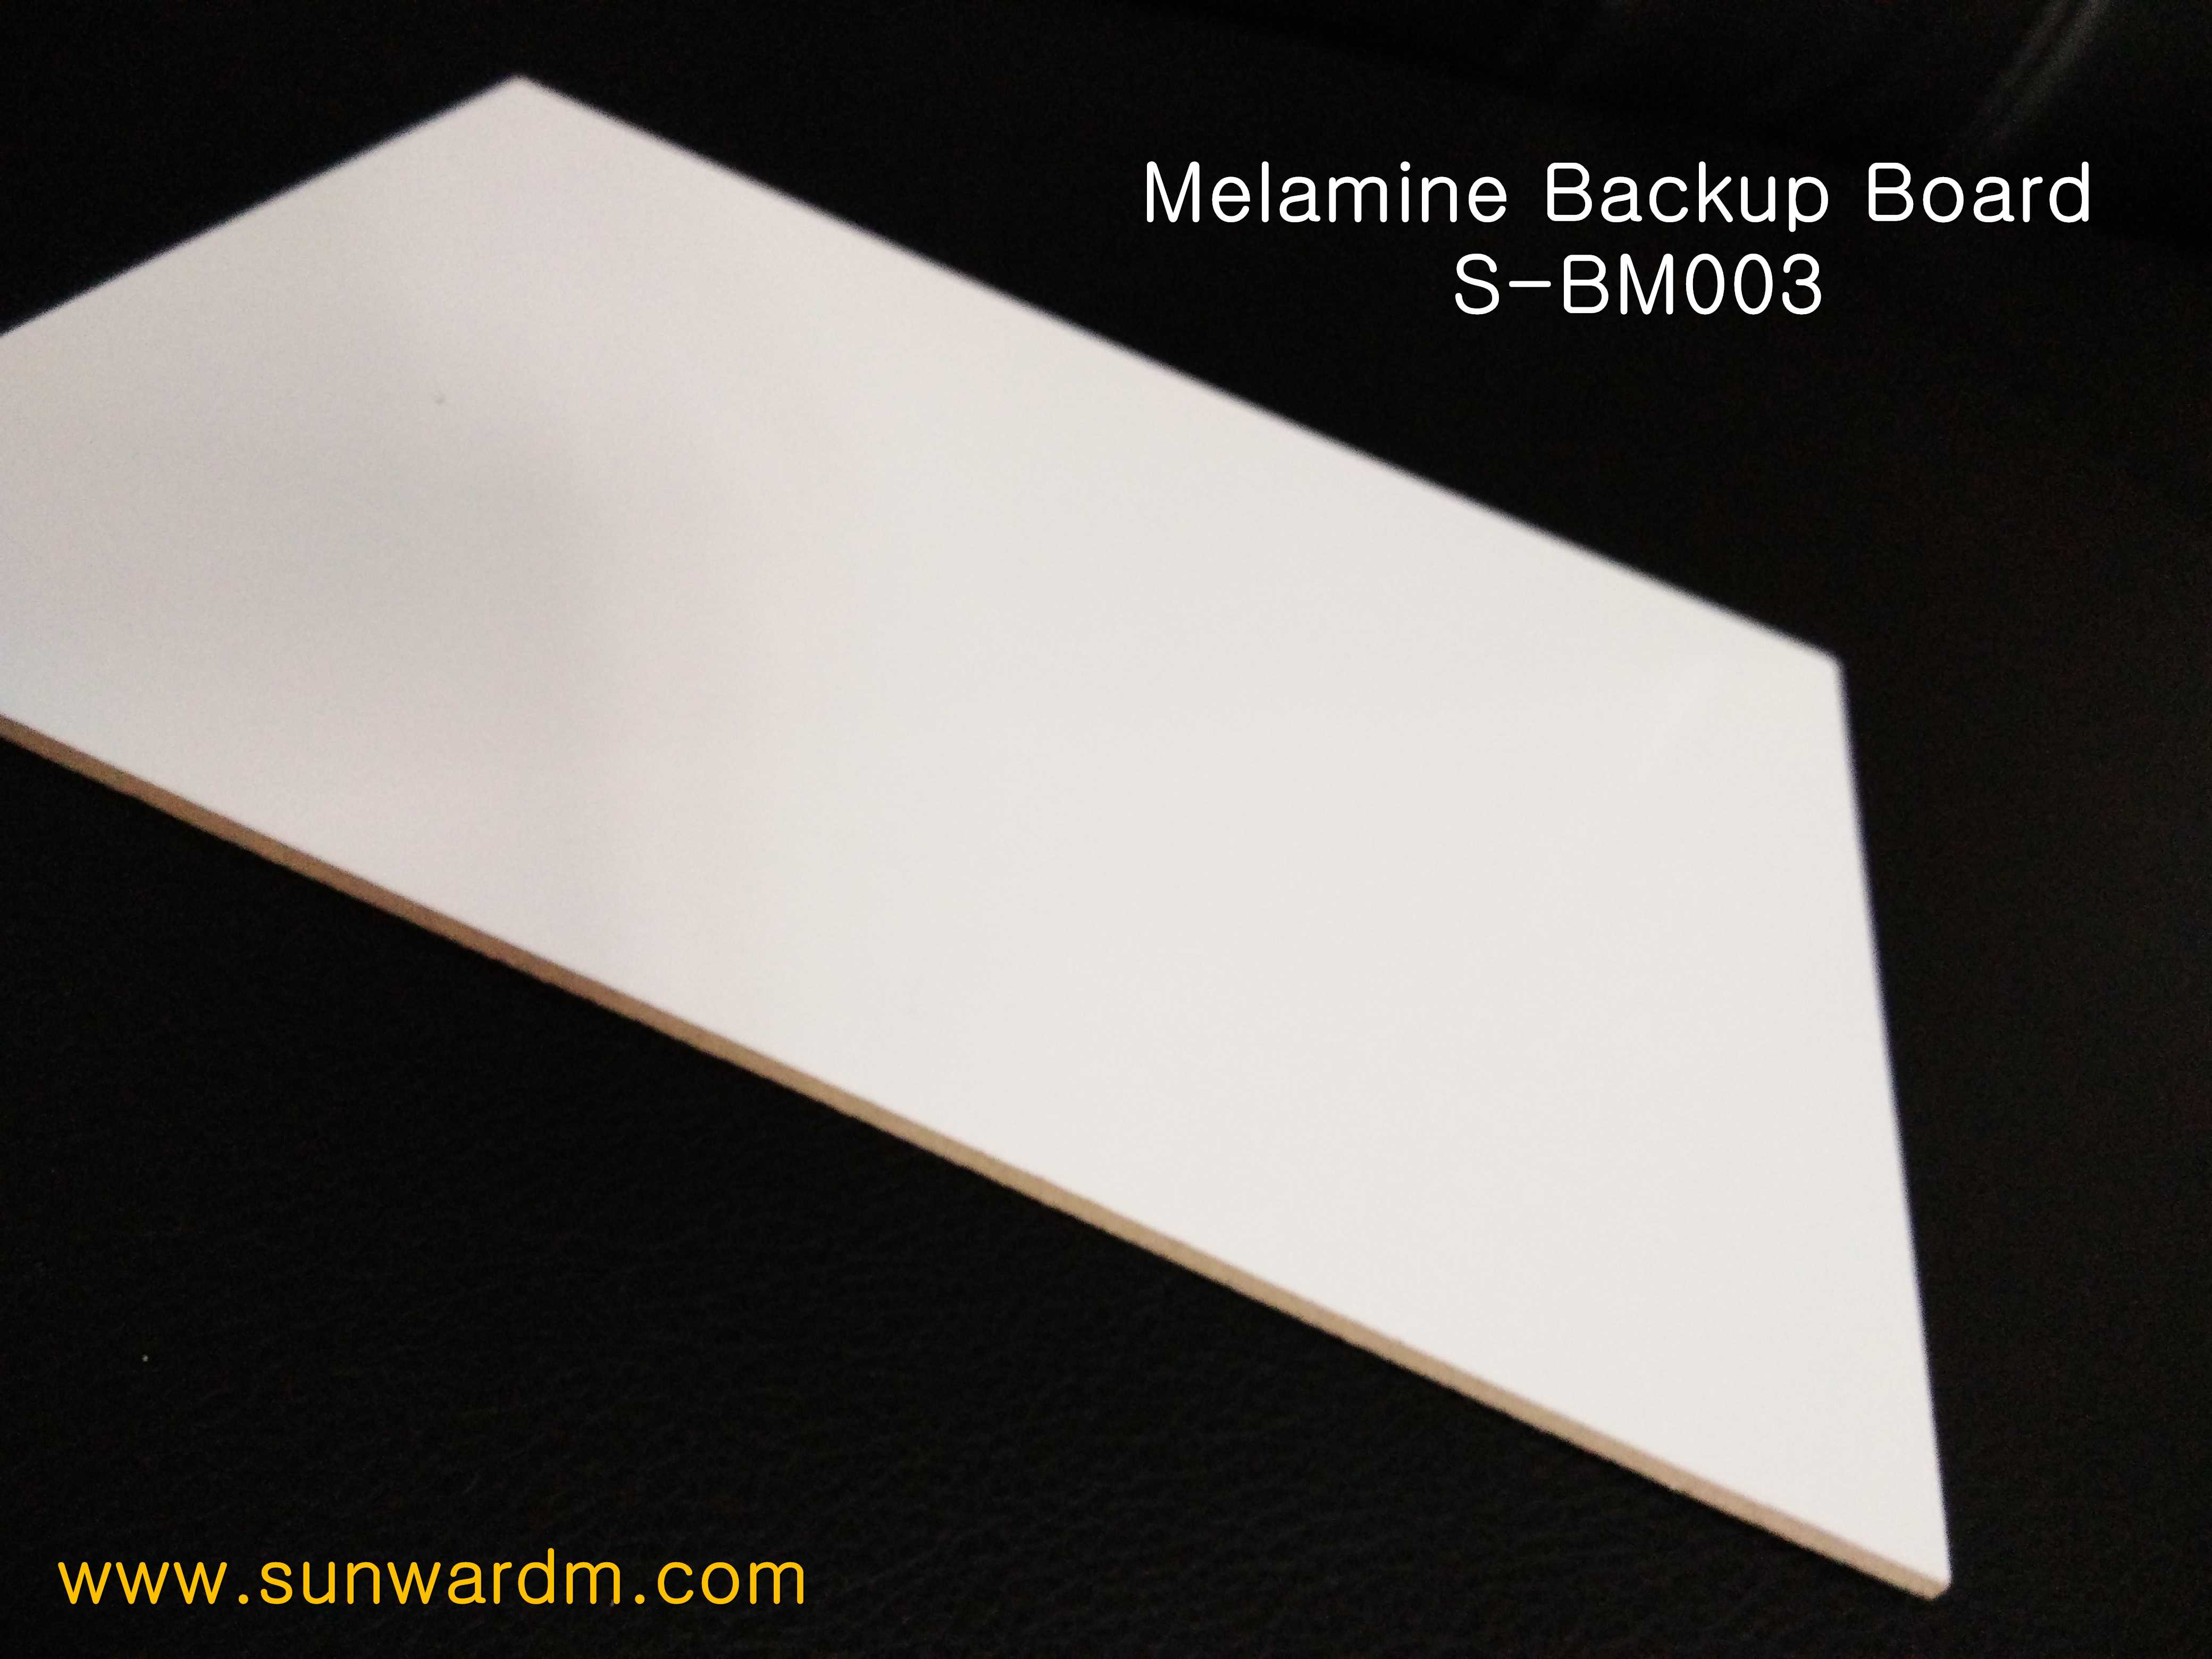 Melamine Backup board